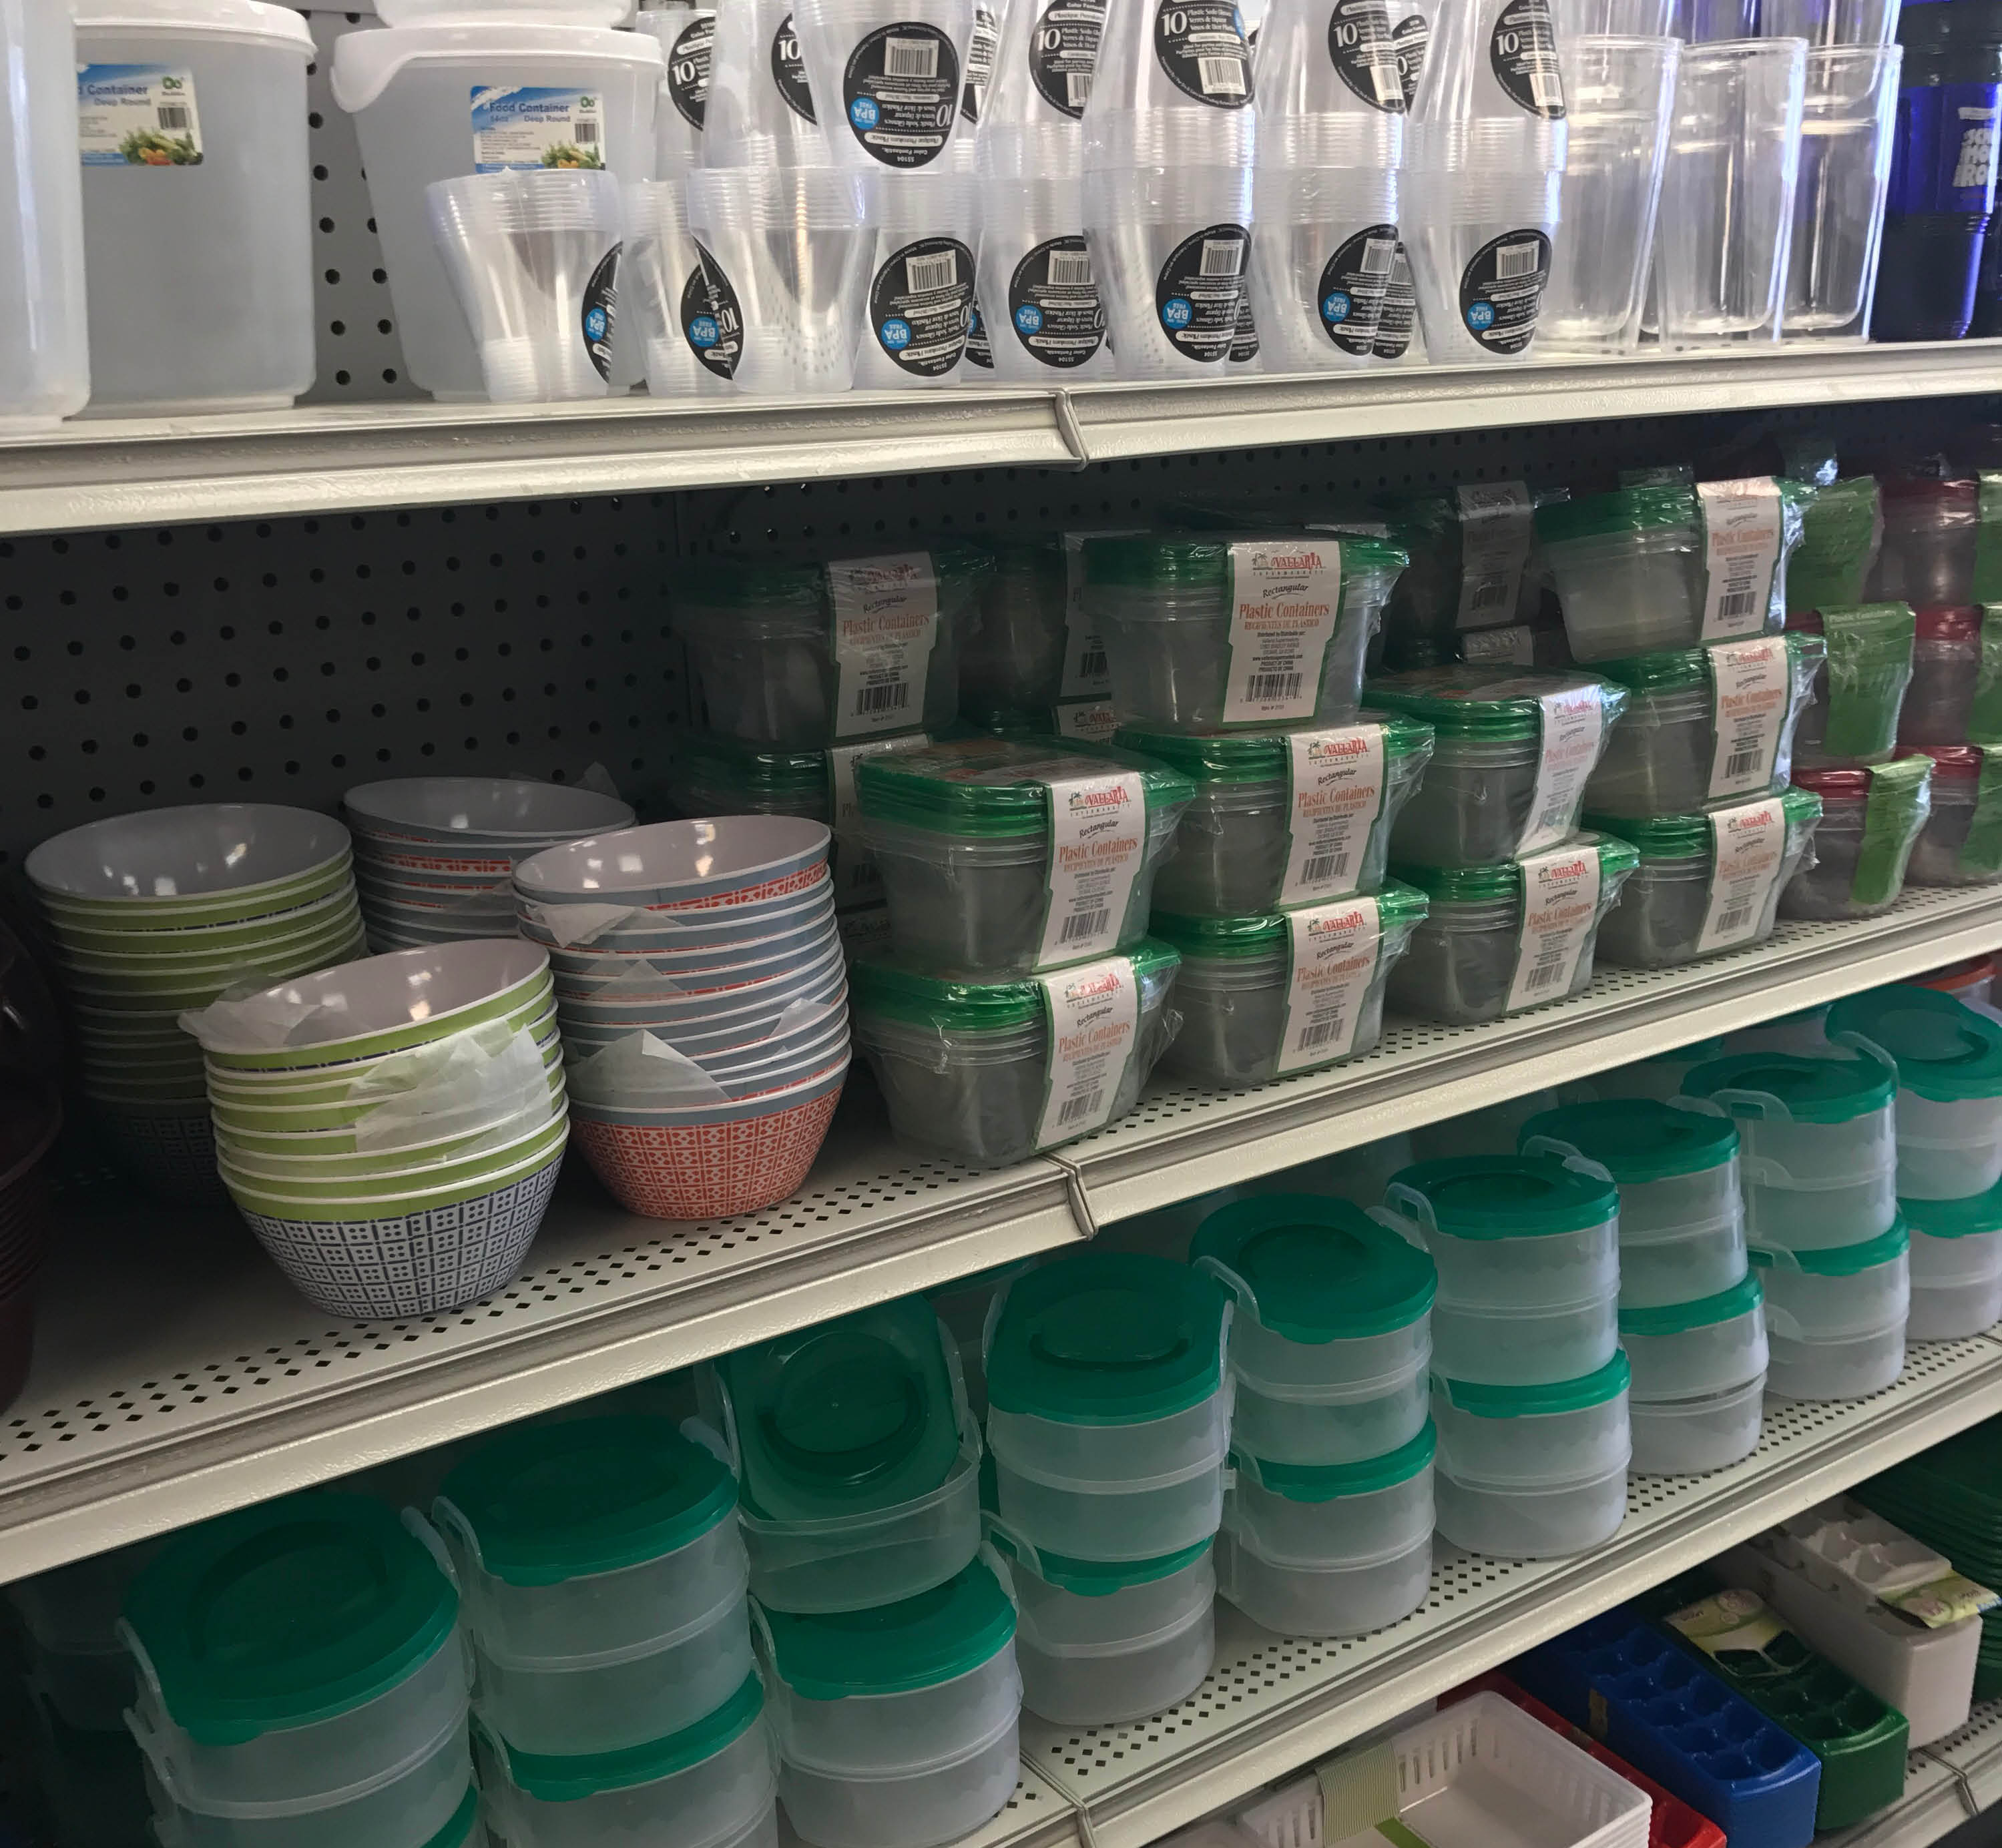 Kitchen storage and dishes